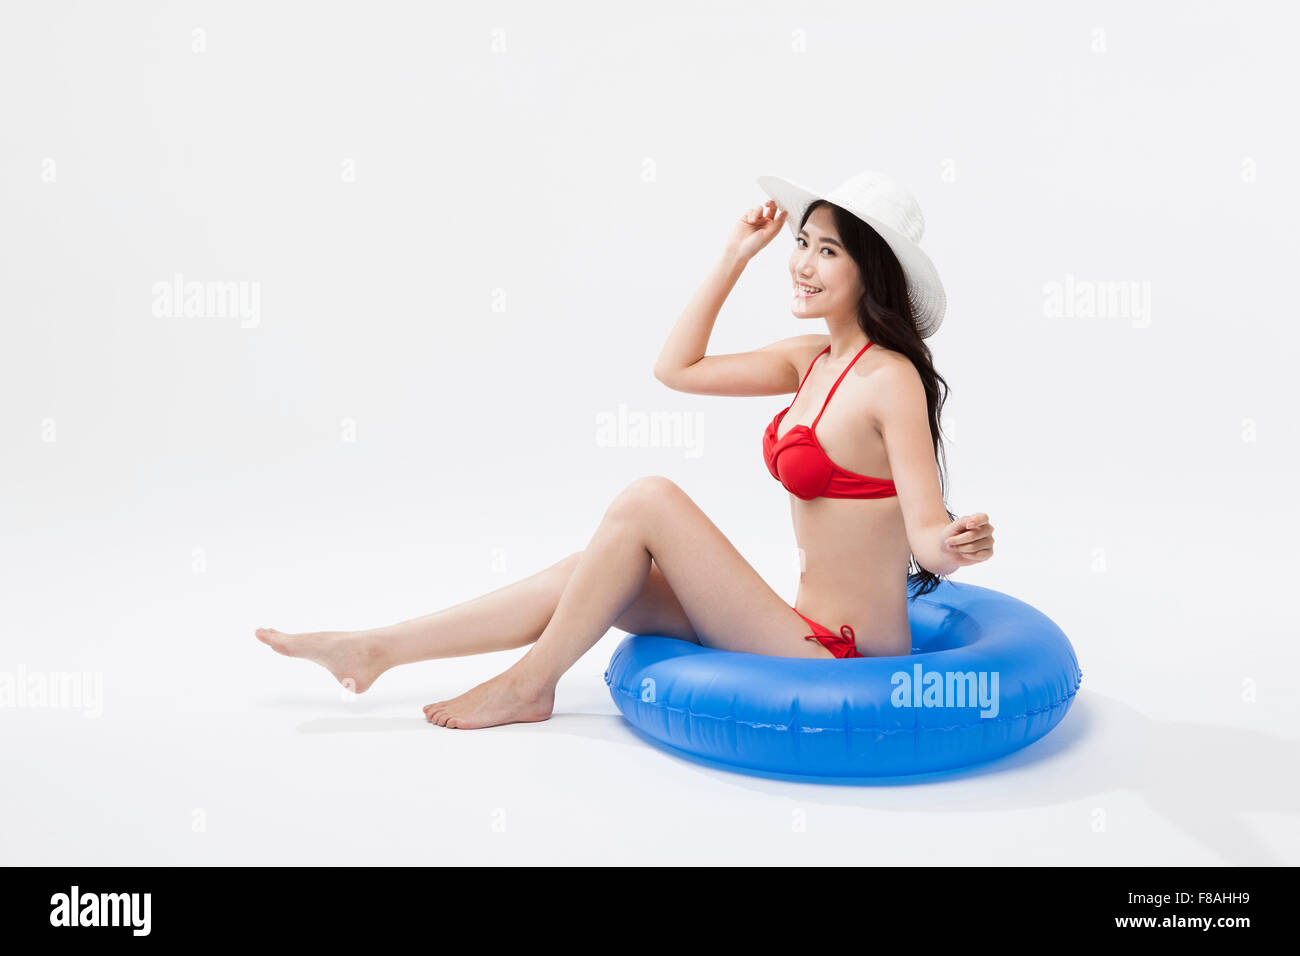 And Asian Blue Sitting Red On Wear A Hat Woman Bikini White In fyb76g